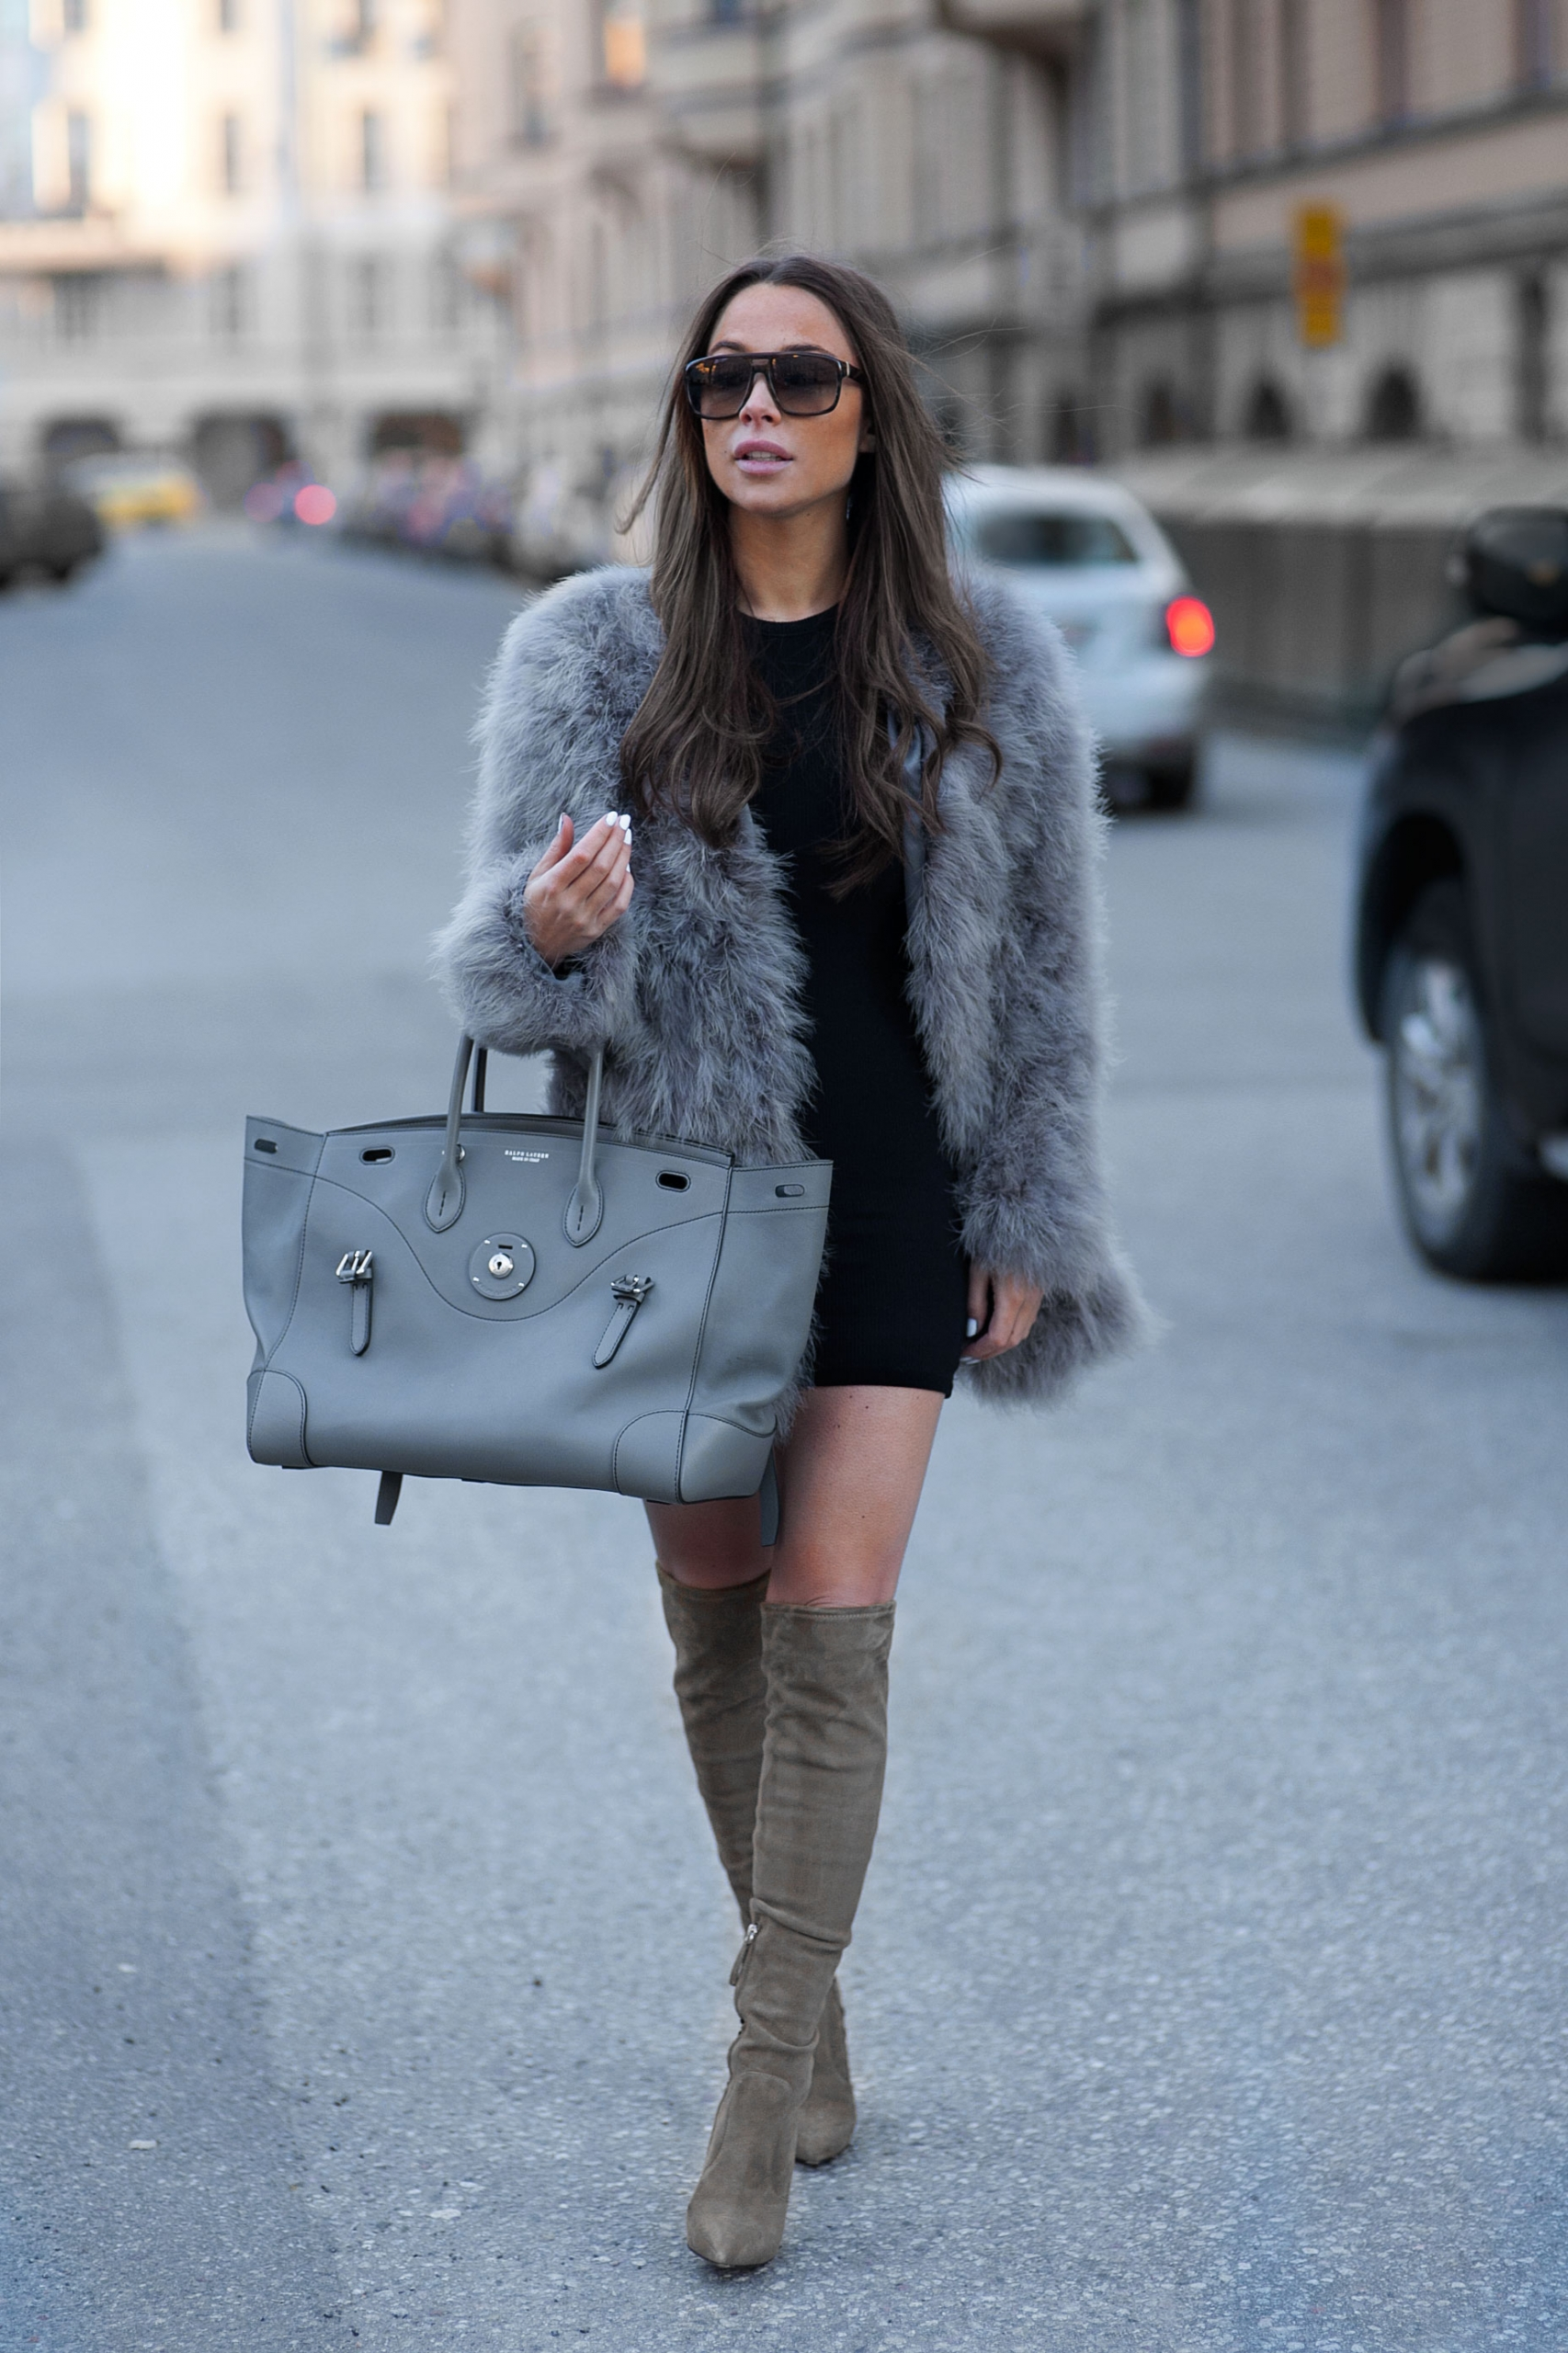 Fuzzy Furry Fashion Trend Autumn 2014 Just The Design